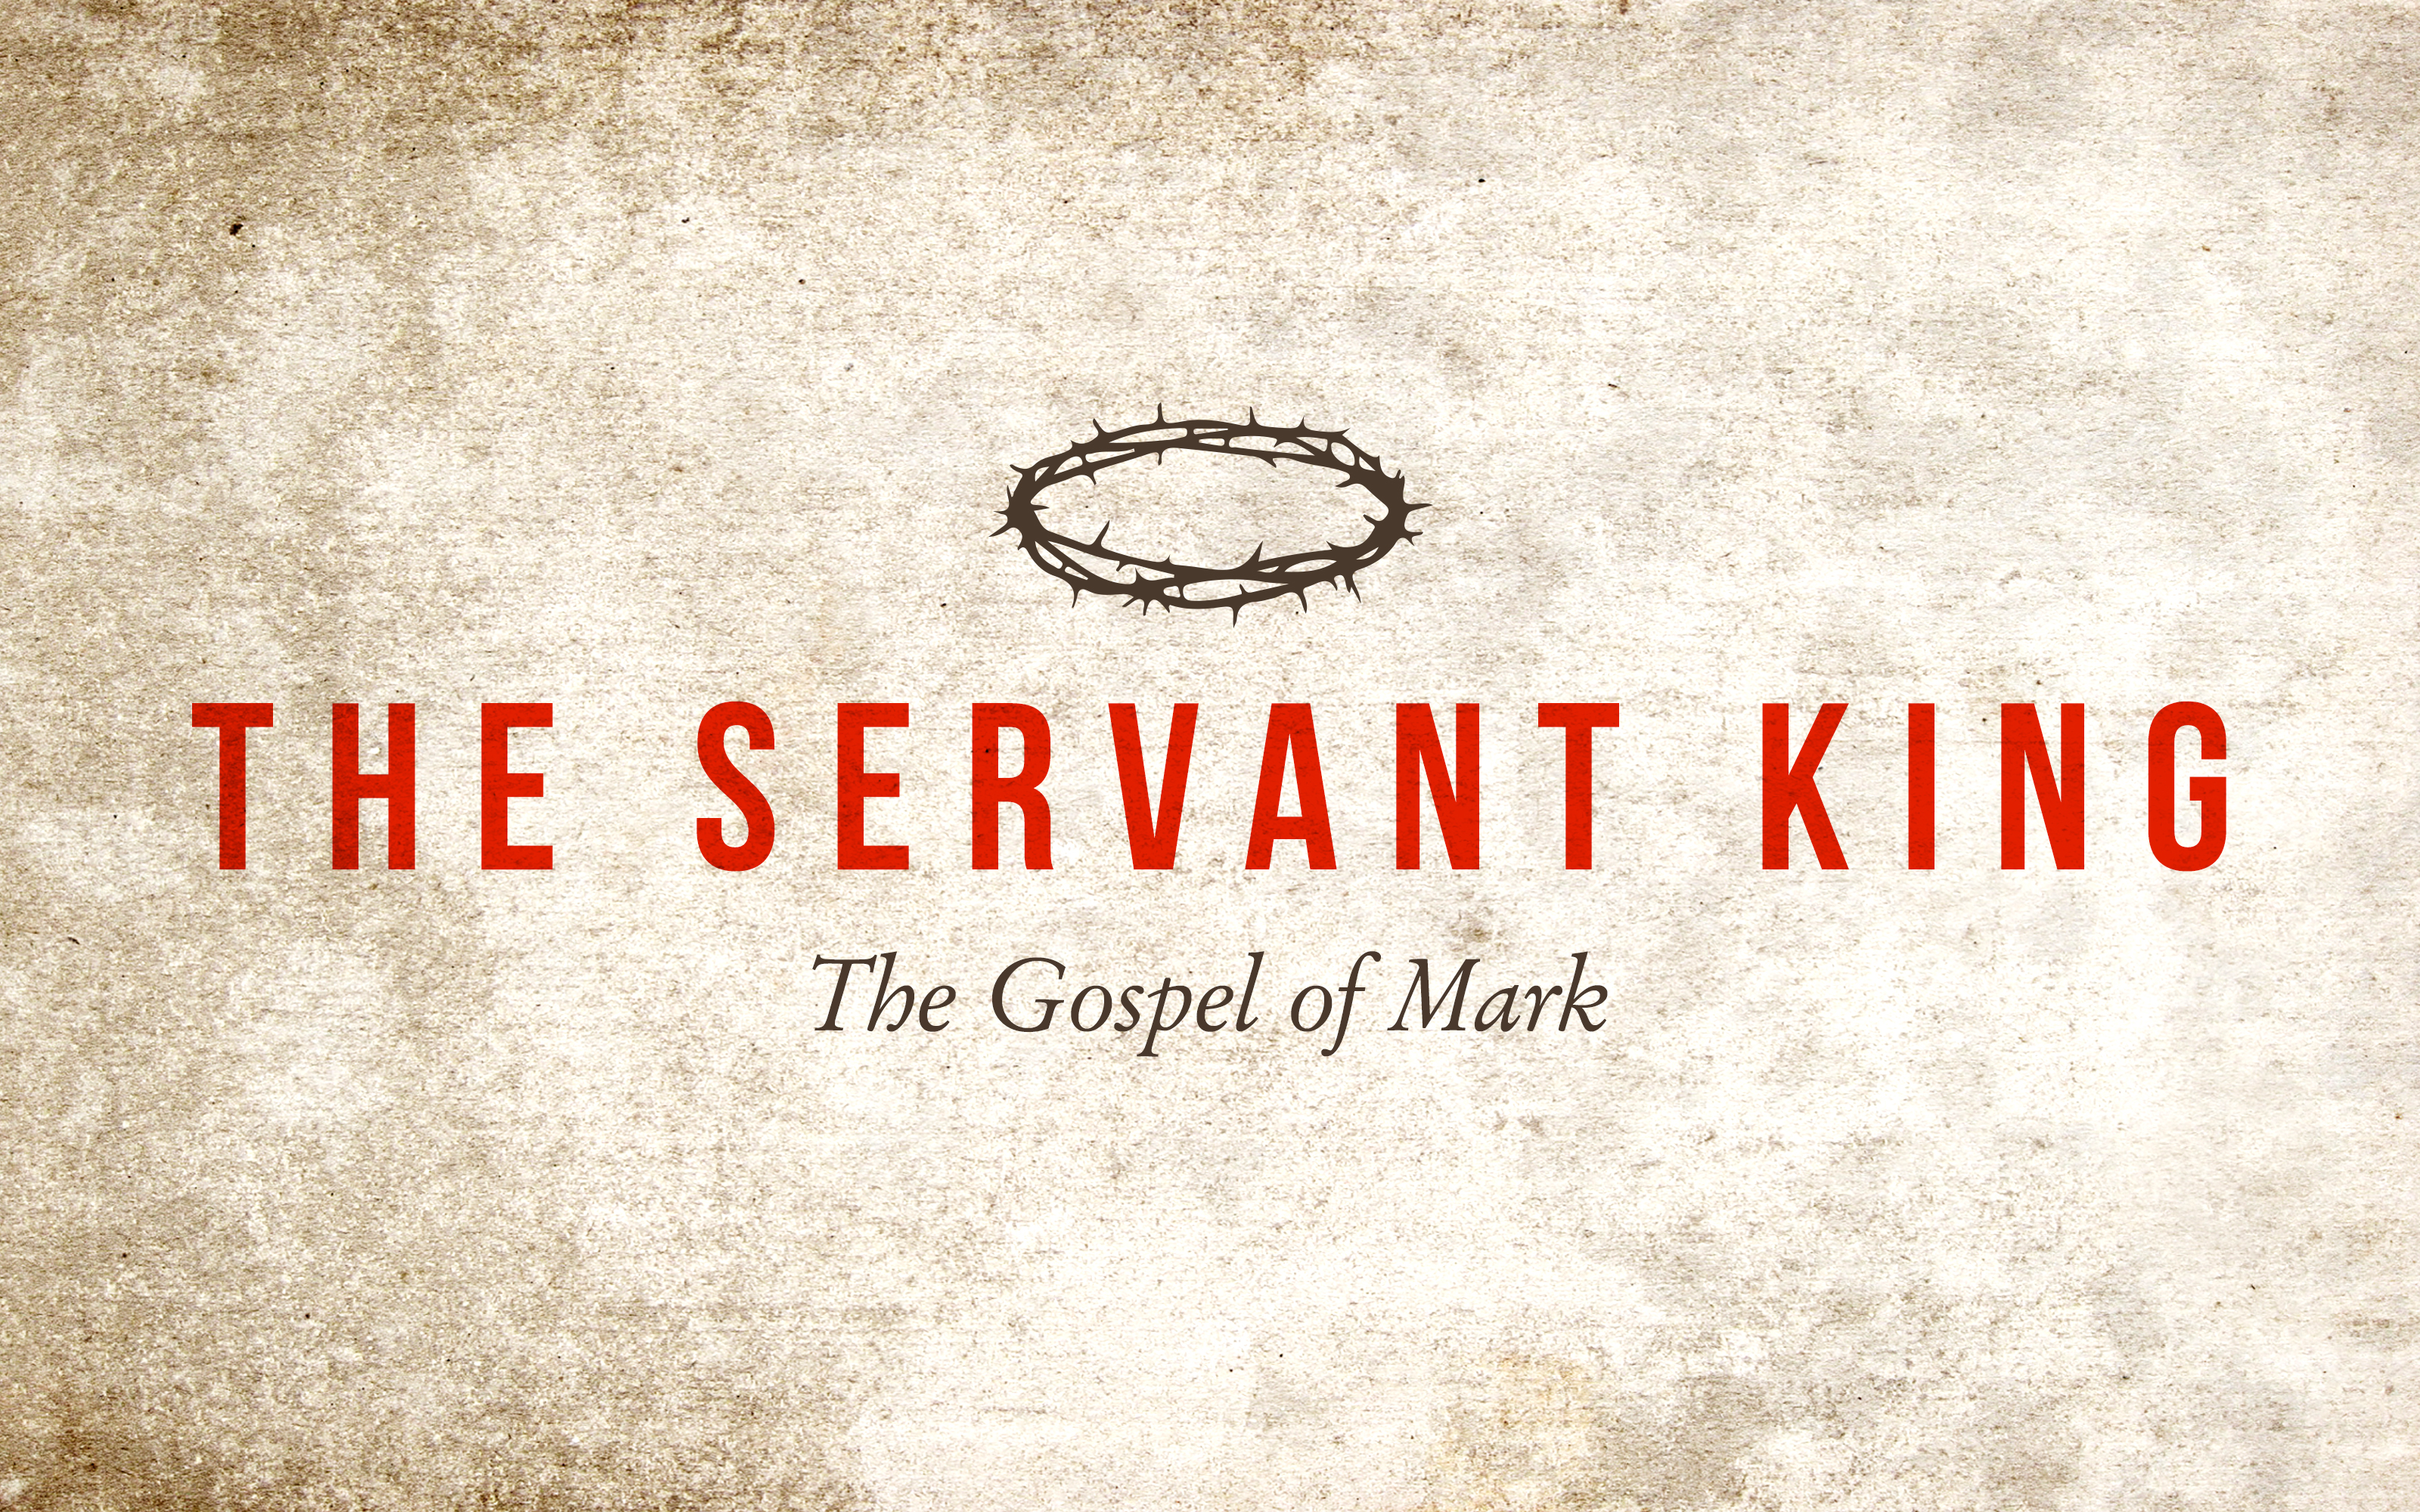 THE SERVANT KING - Faith in the Word of the King